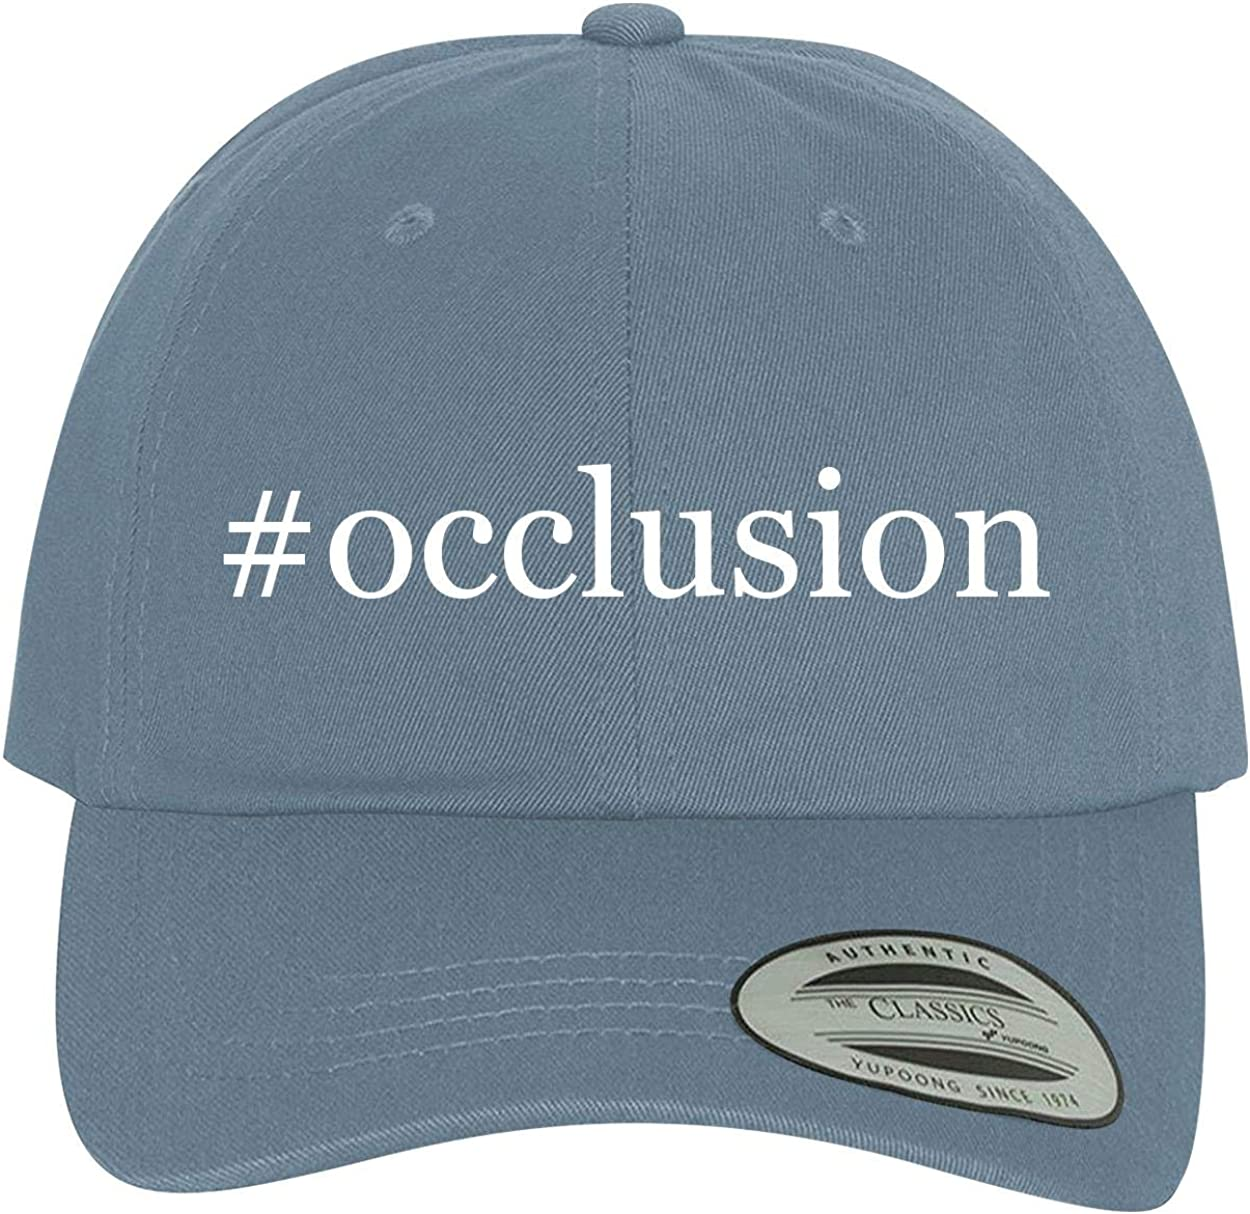 Comfortable Dad Hat Baseball Cap BH Cool Designs #Occlusion